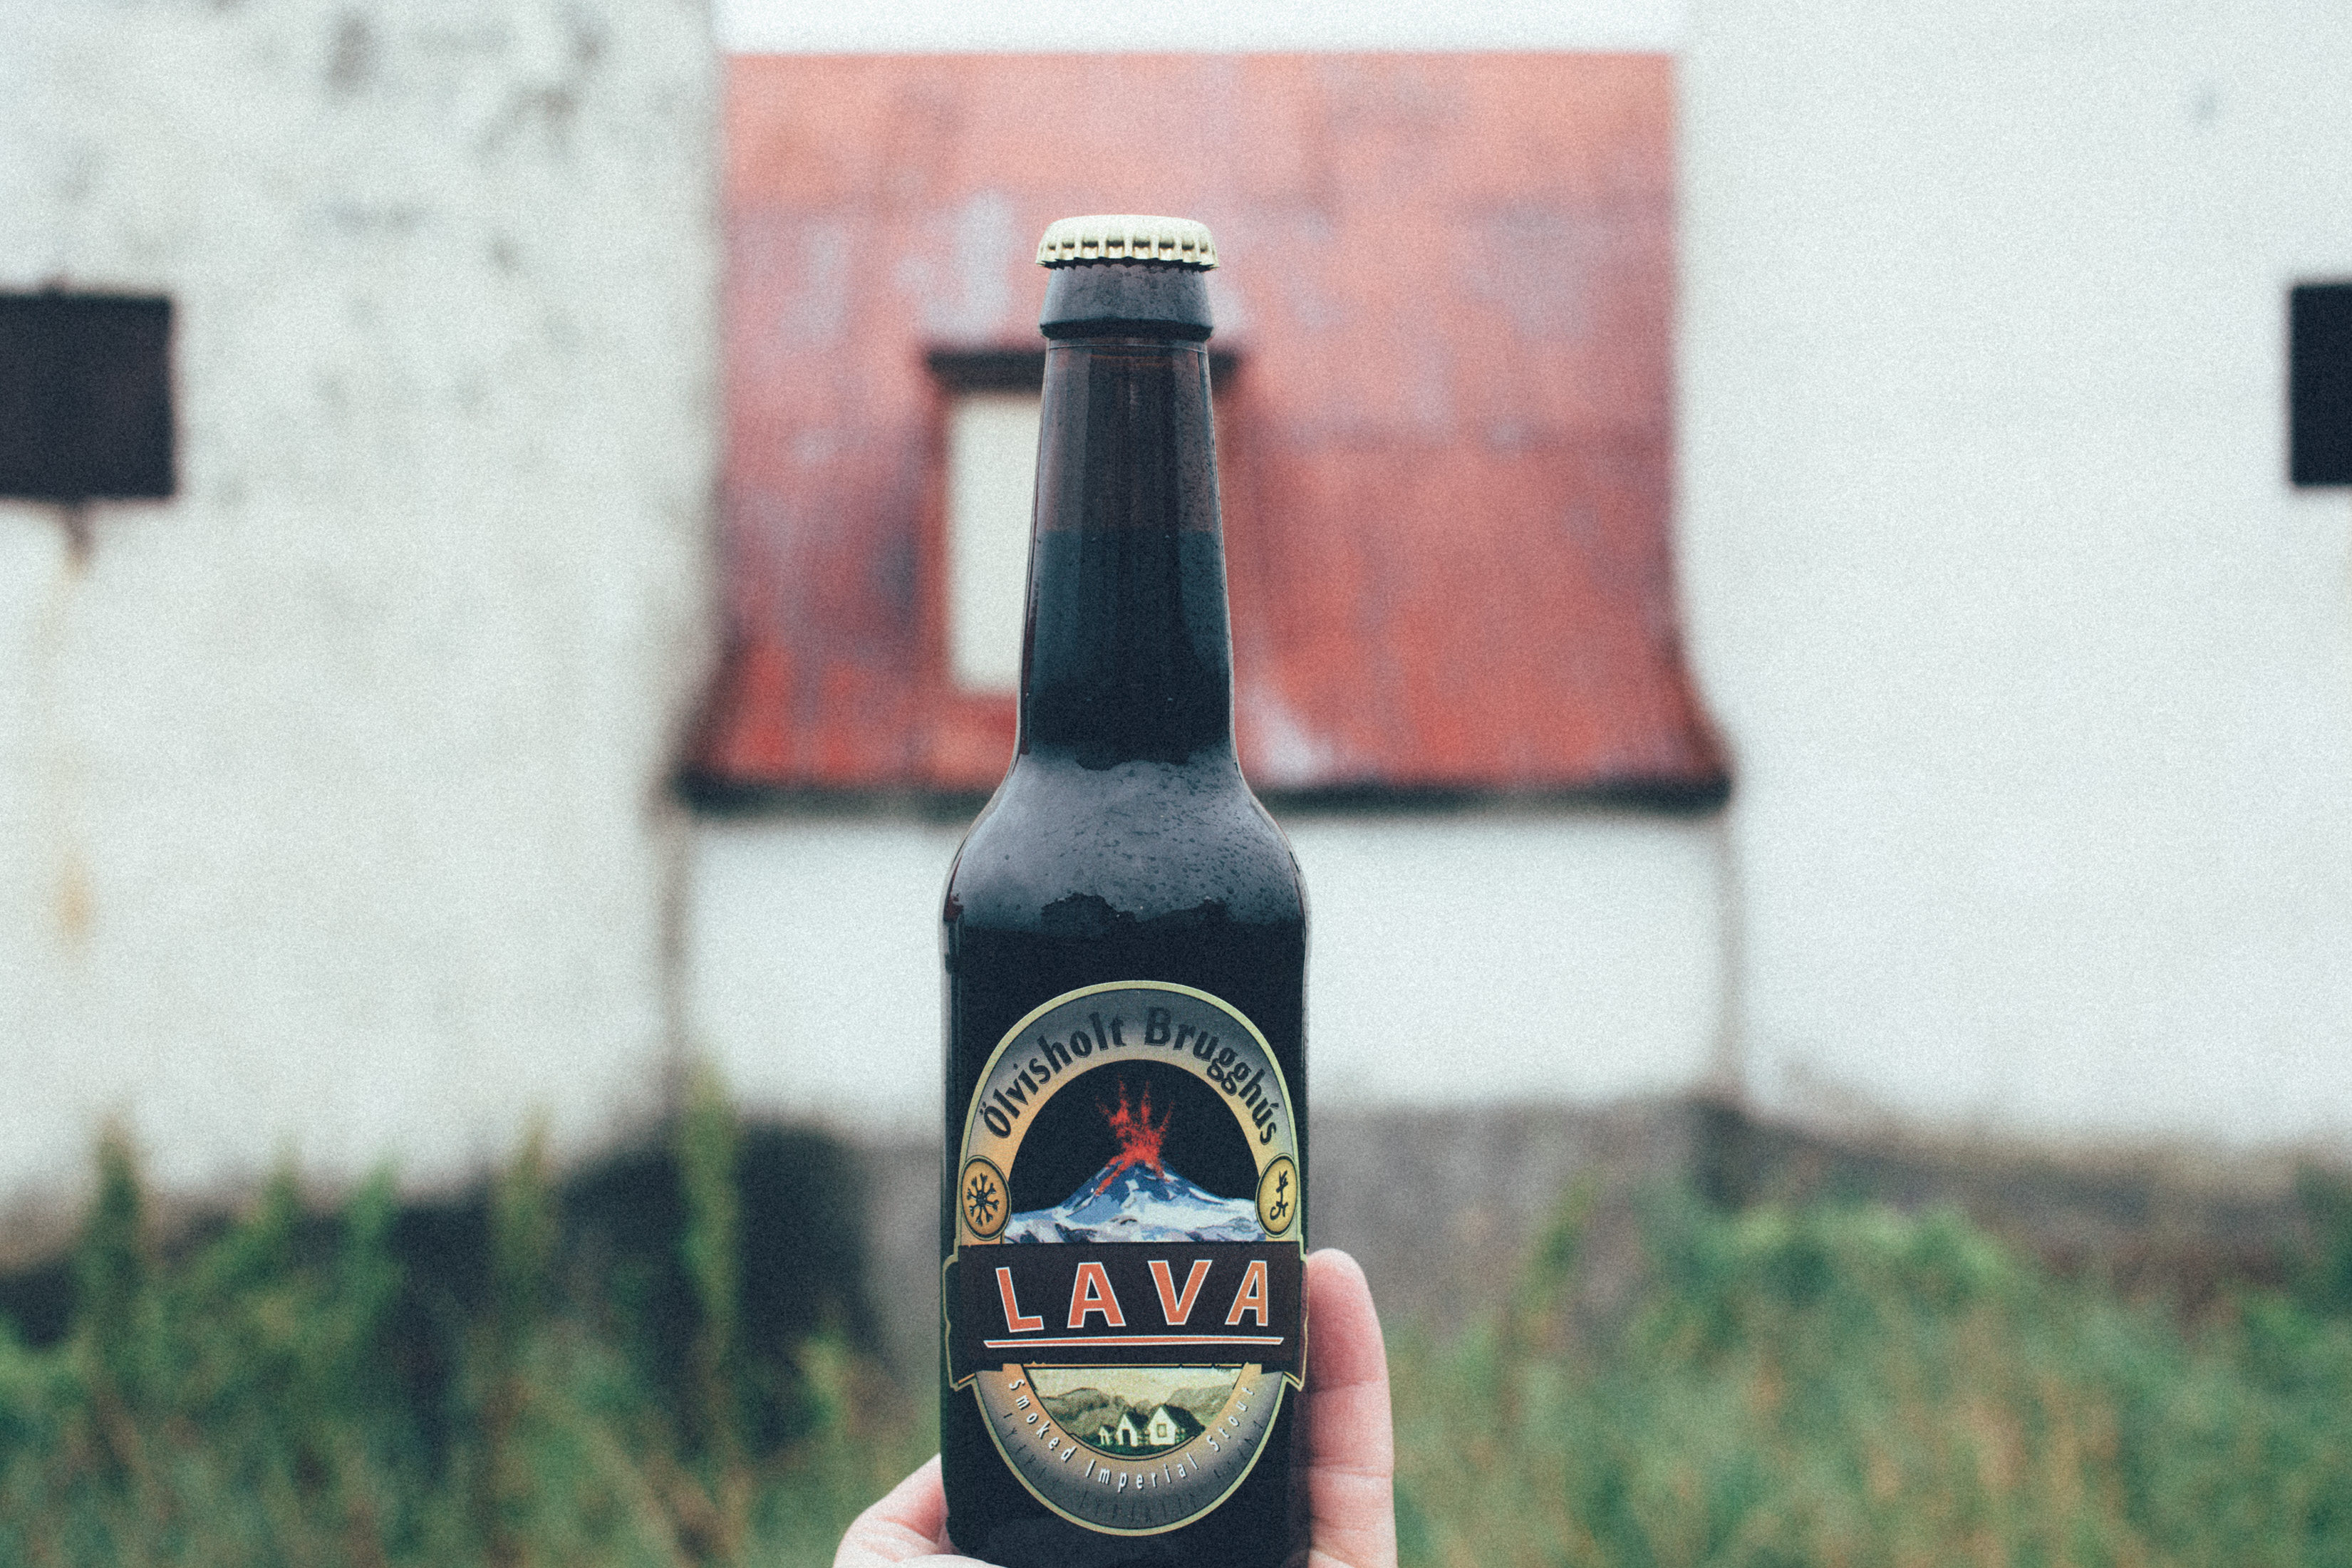 Olvisholt Lava Imperial Smoked Porter farmhouse in the background